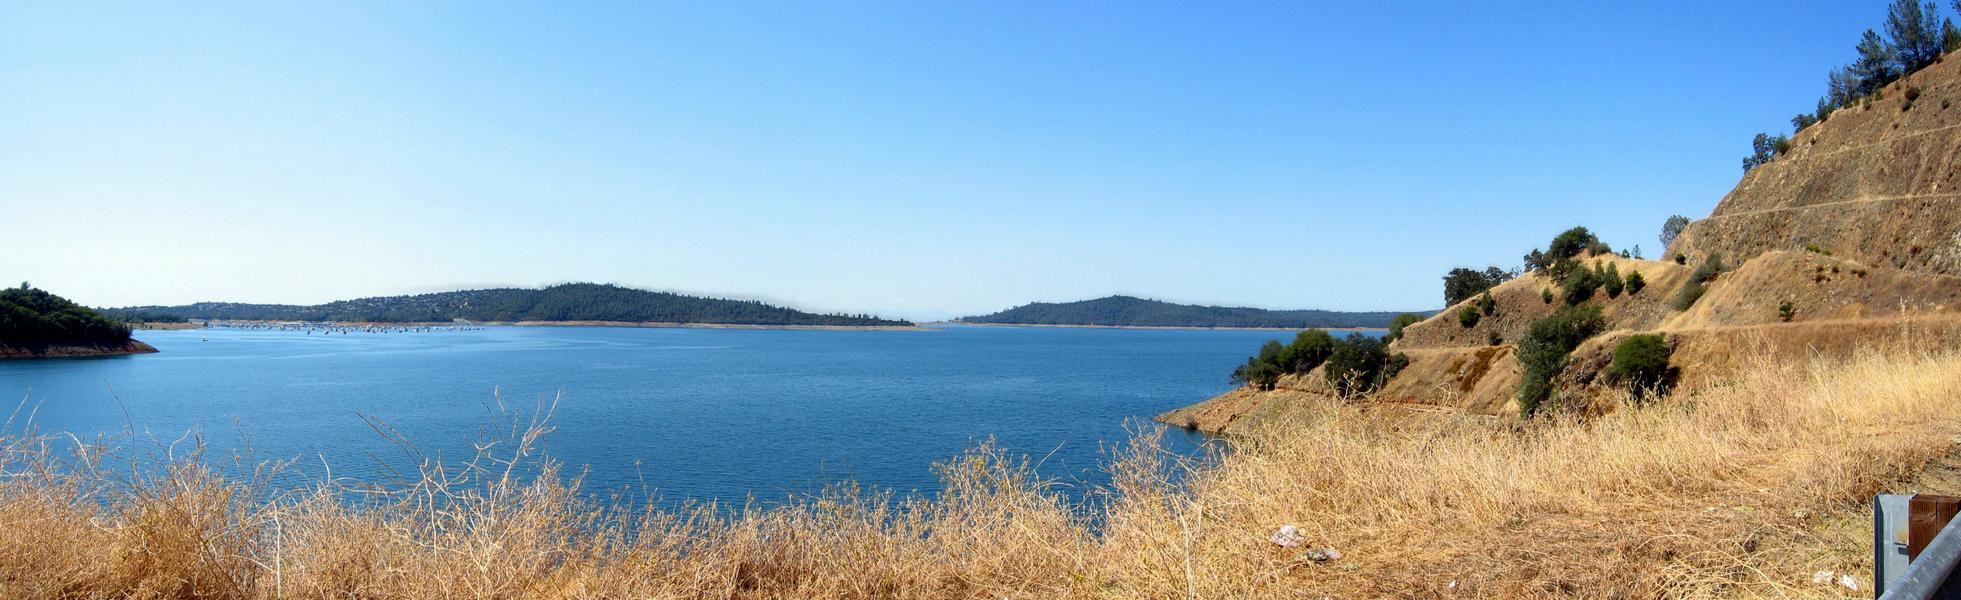 Blue waters meet blue skies with Oroville's peaceful view